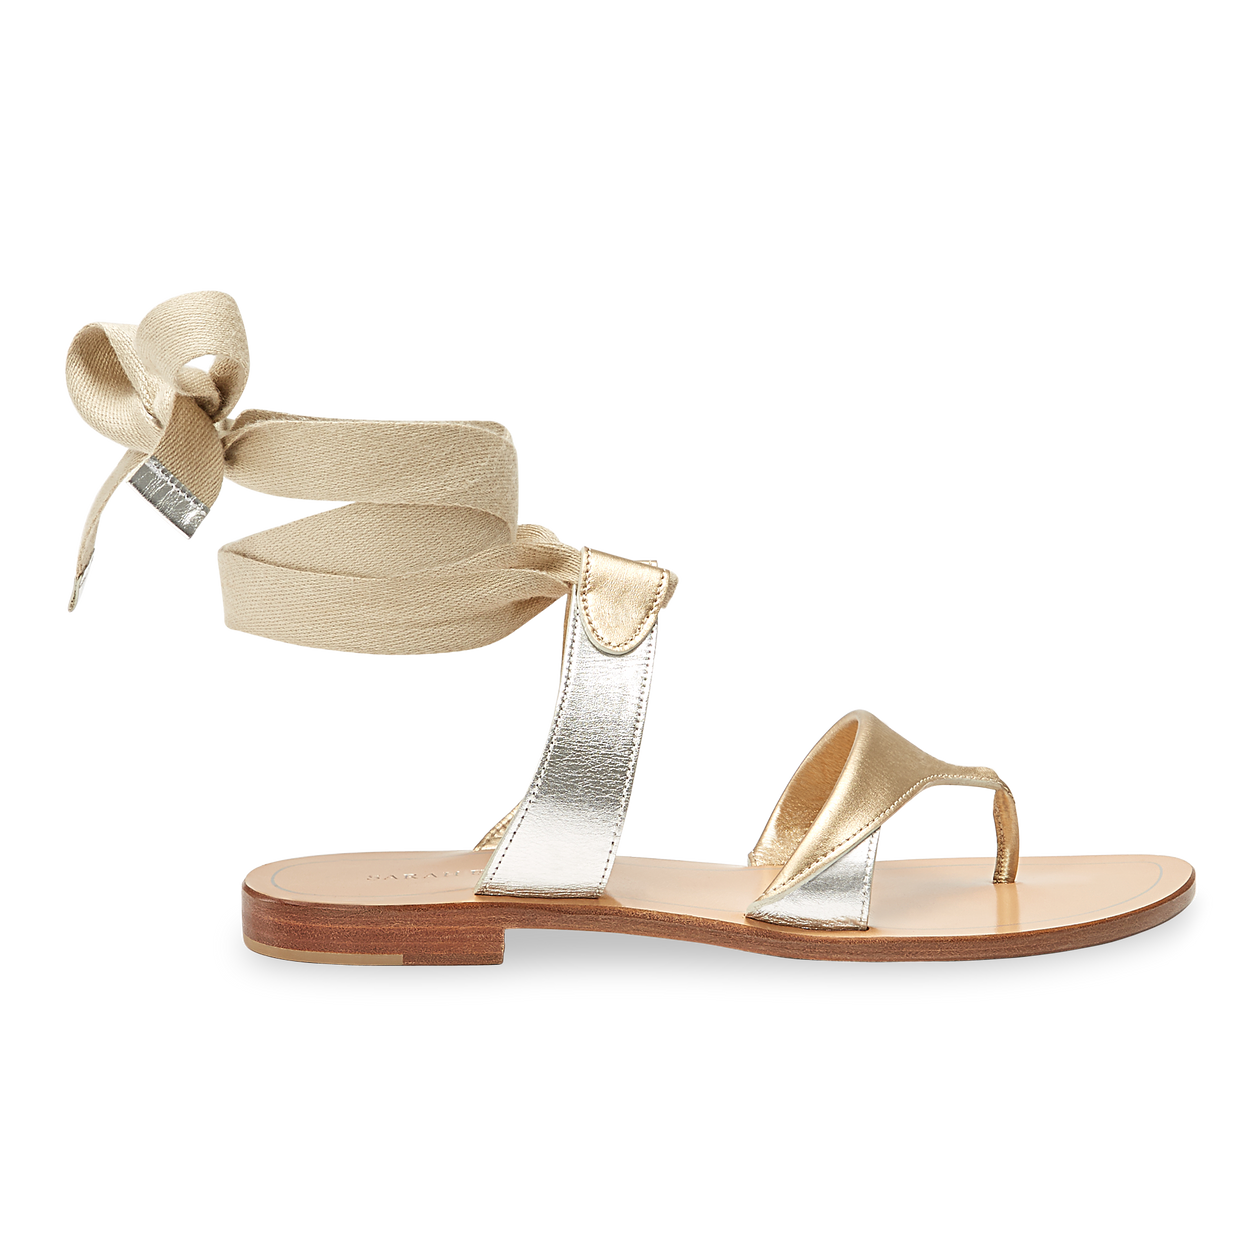 5b4ae3752d0ab Grear Sandals – Sarah Flint